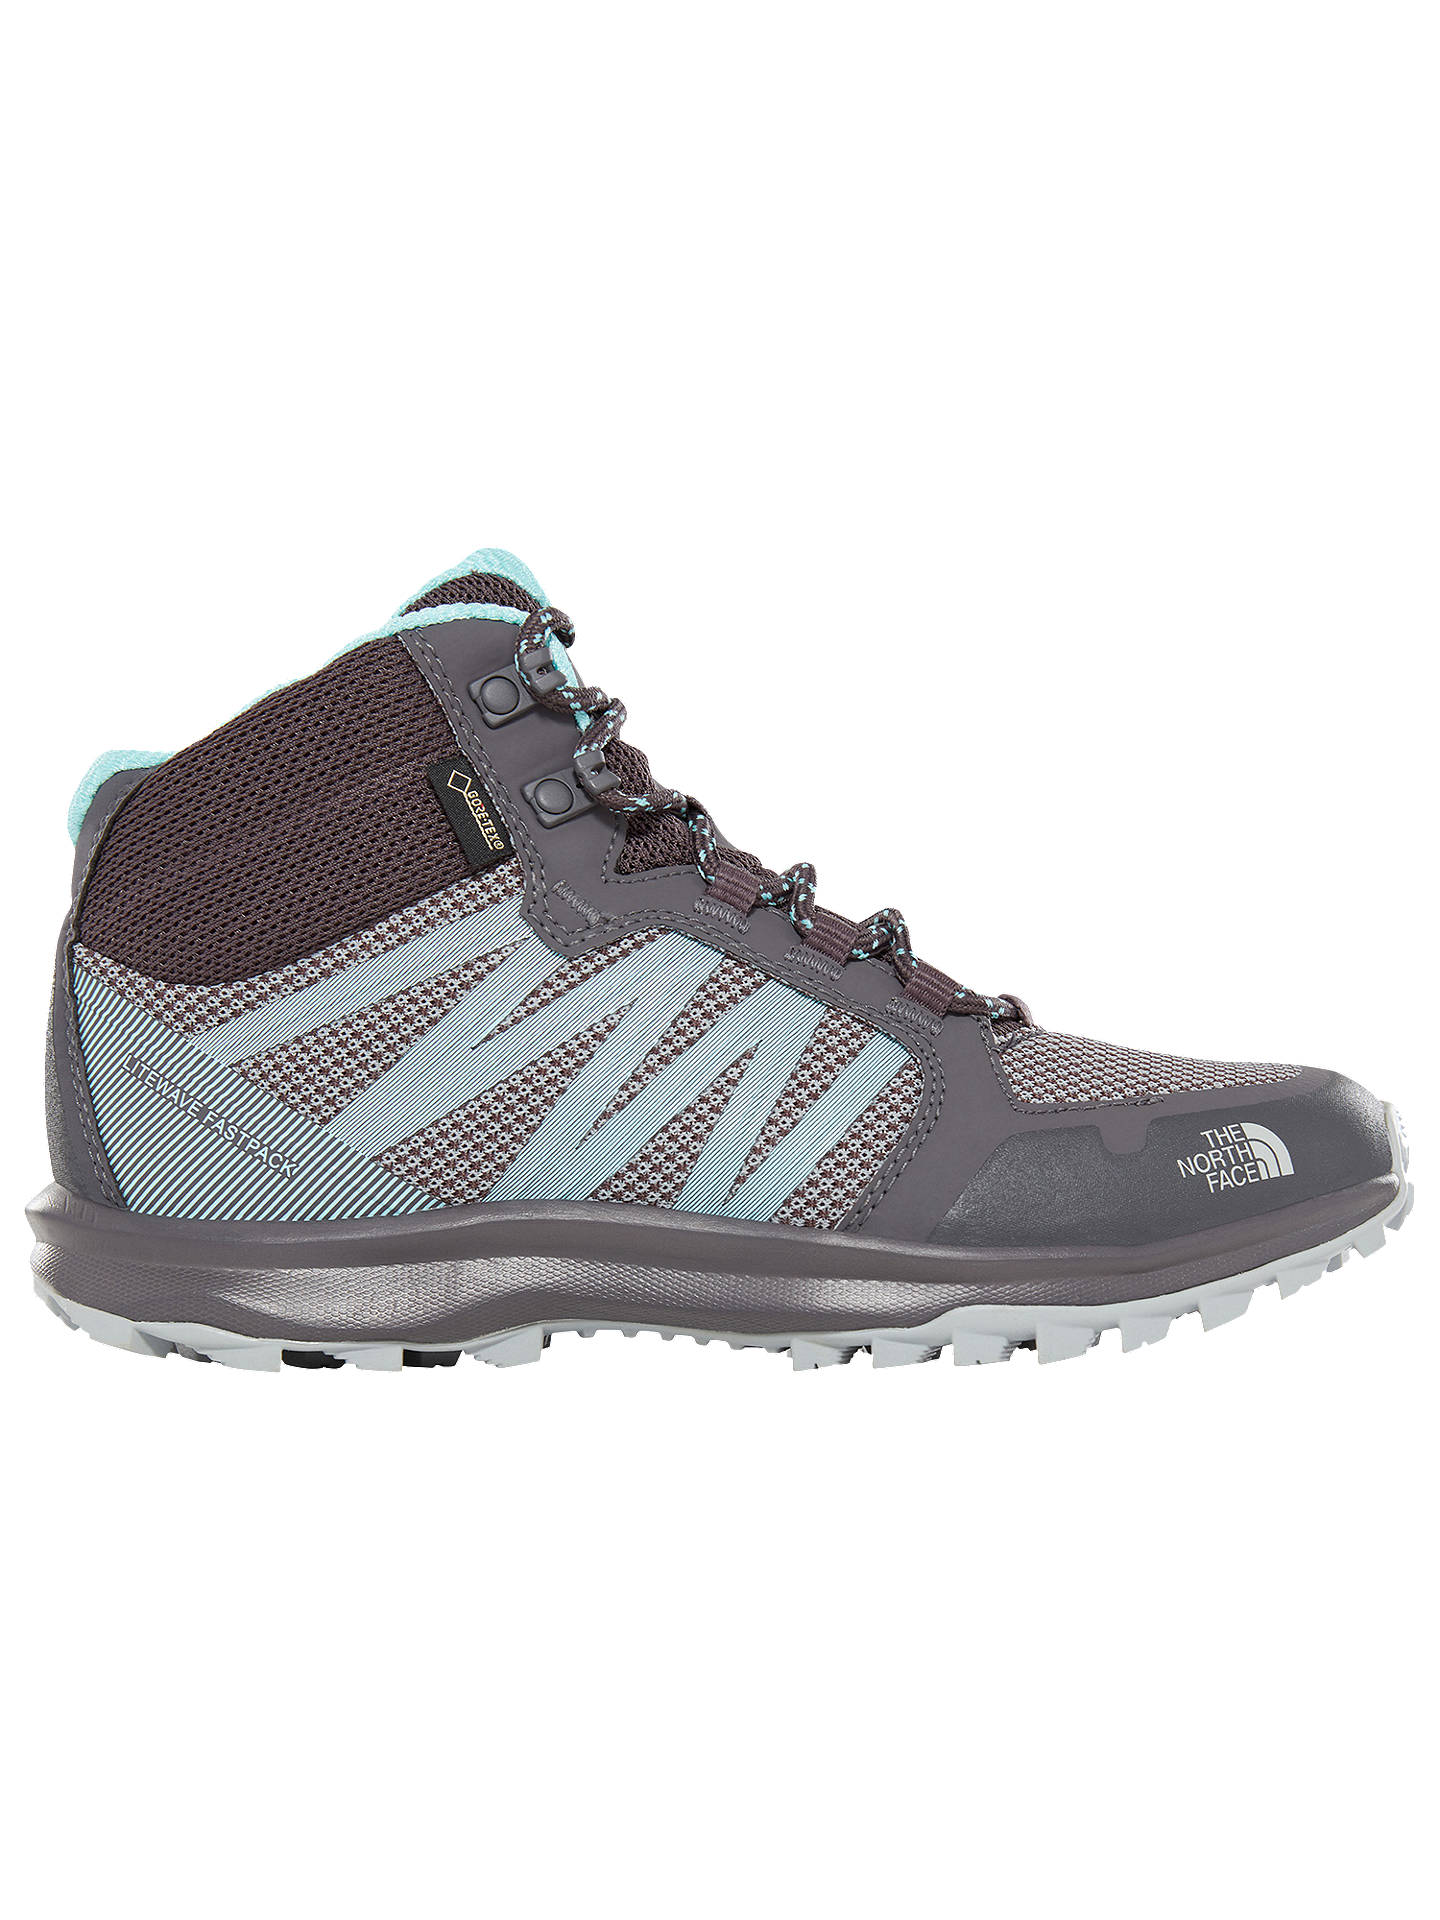 Buy The North Face Litewave Fastpack Mid GTX Women's Hiking Shoes, Blackened Pearl/Aqua, 5 Online at johnlewis.com